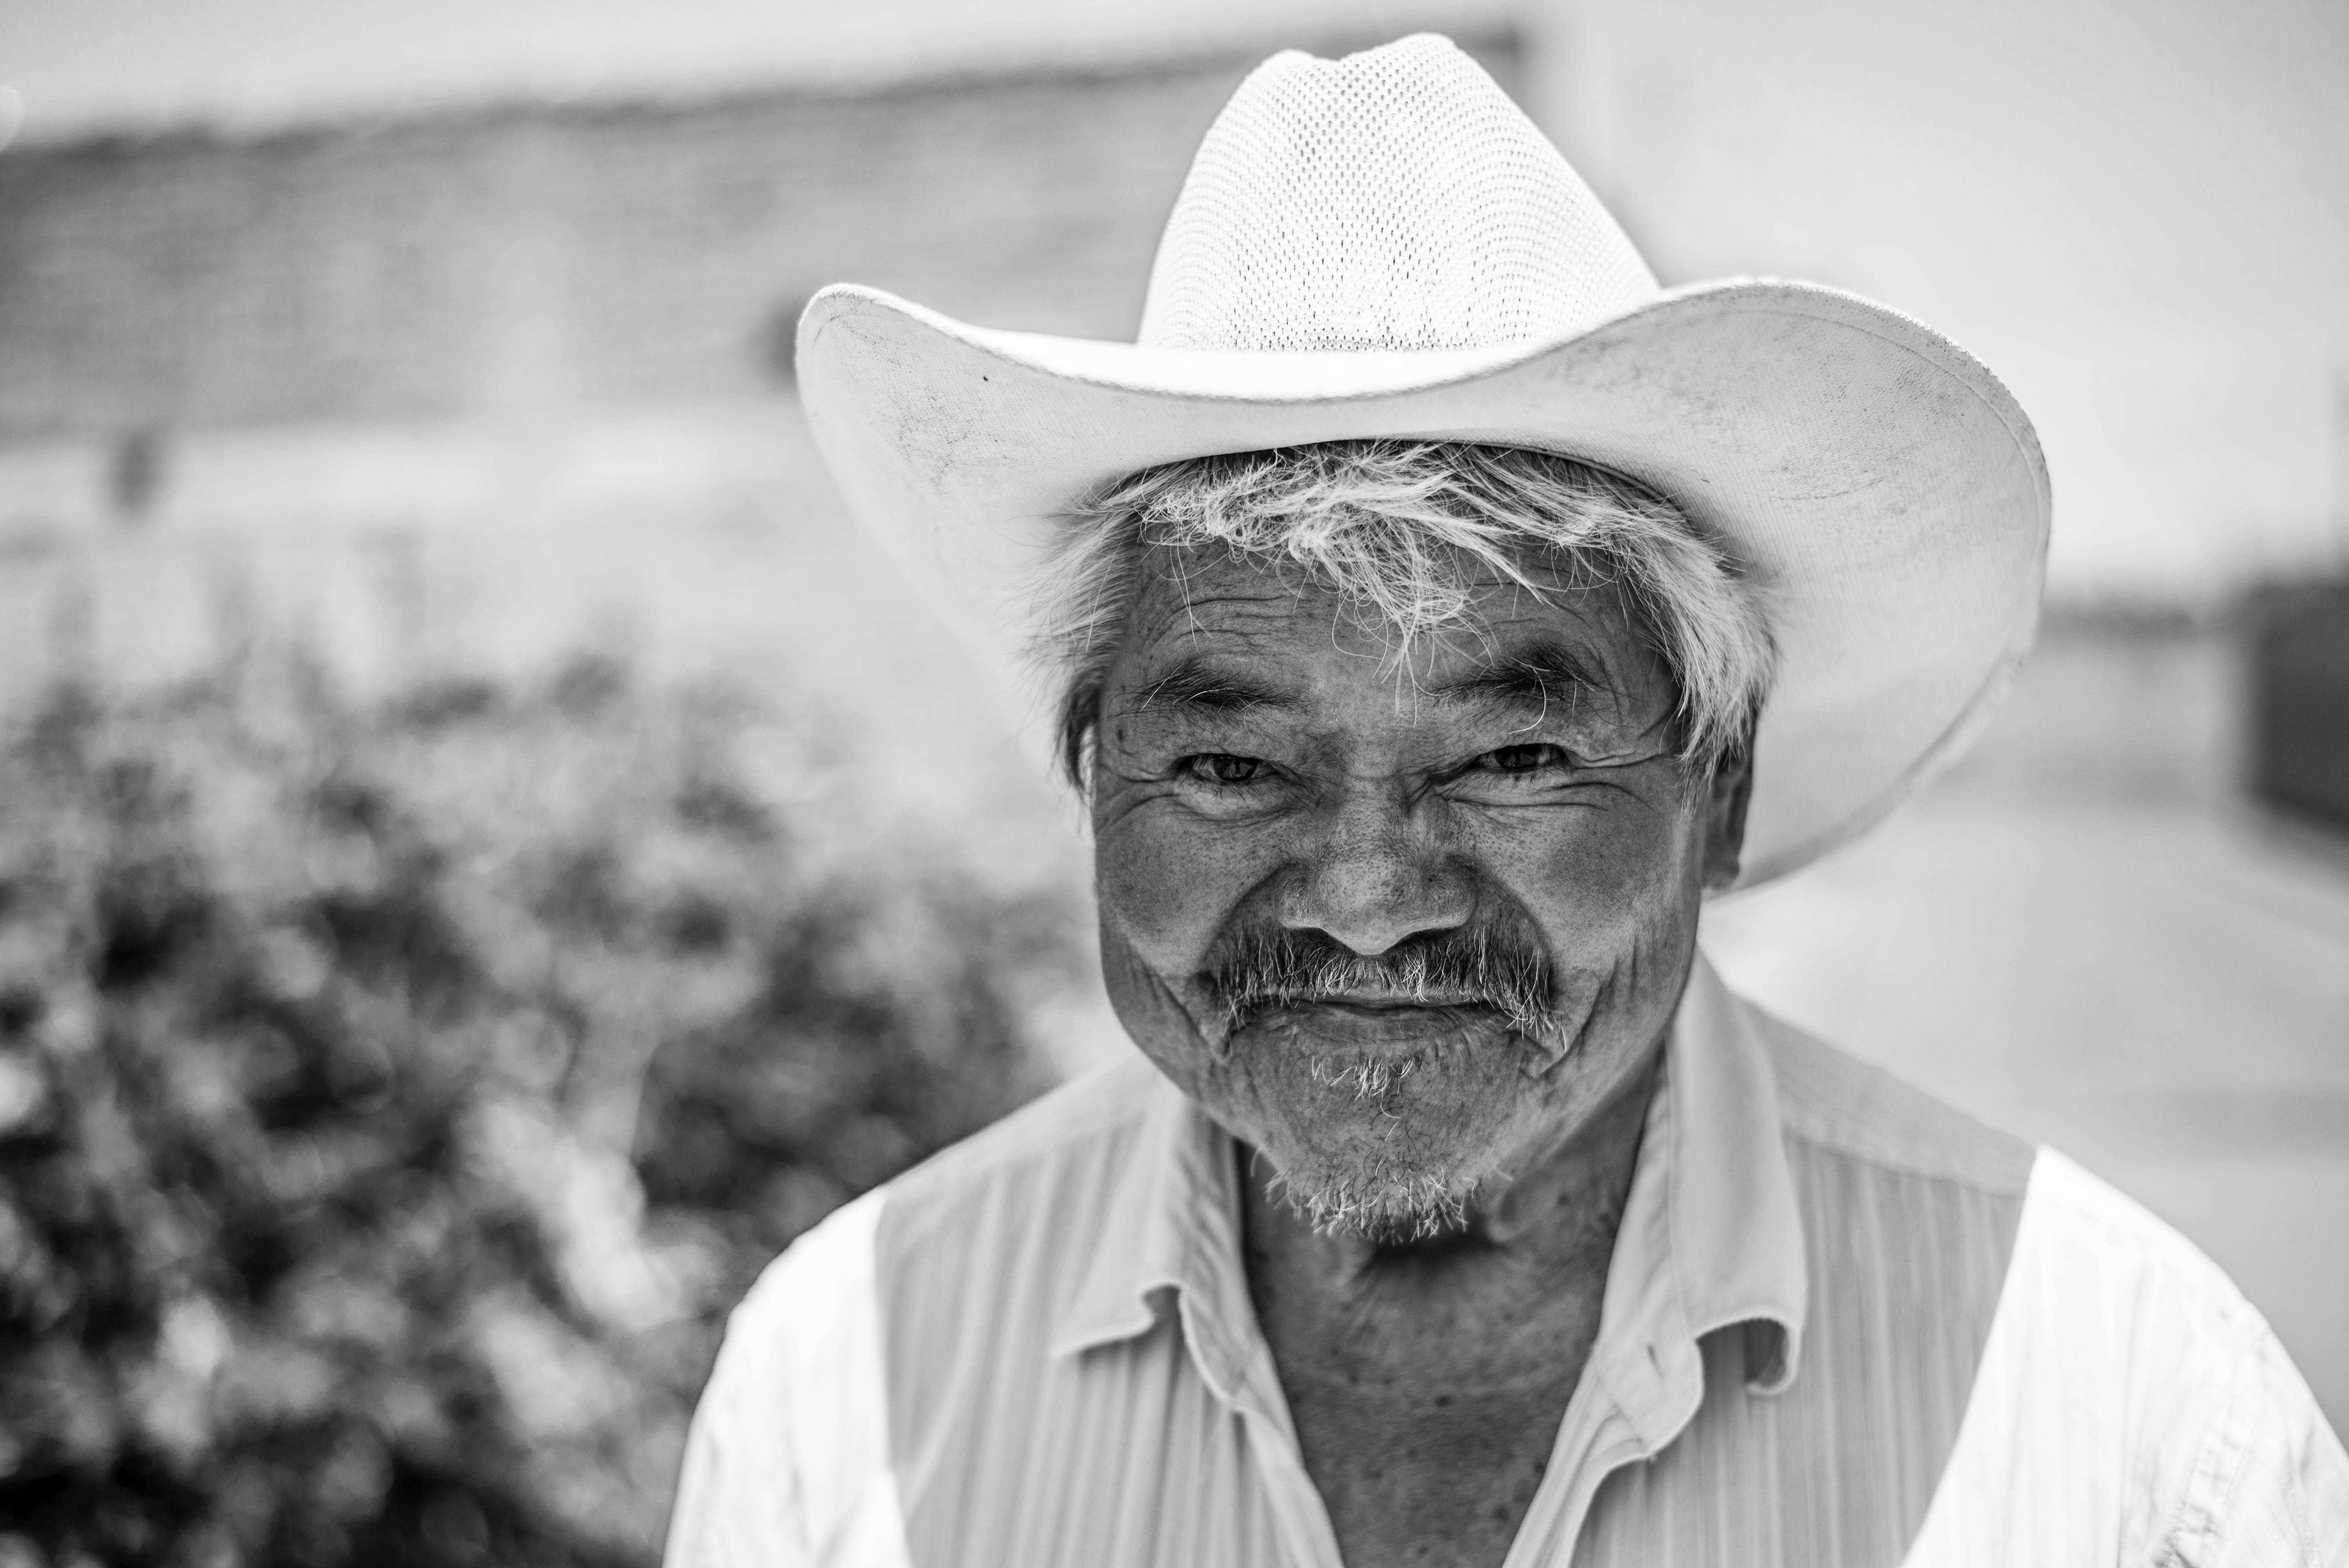 Black and white shot of older man in white cowboy hat in white shirt in daytime